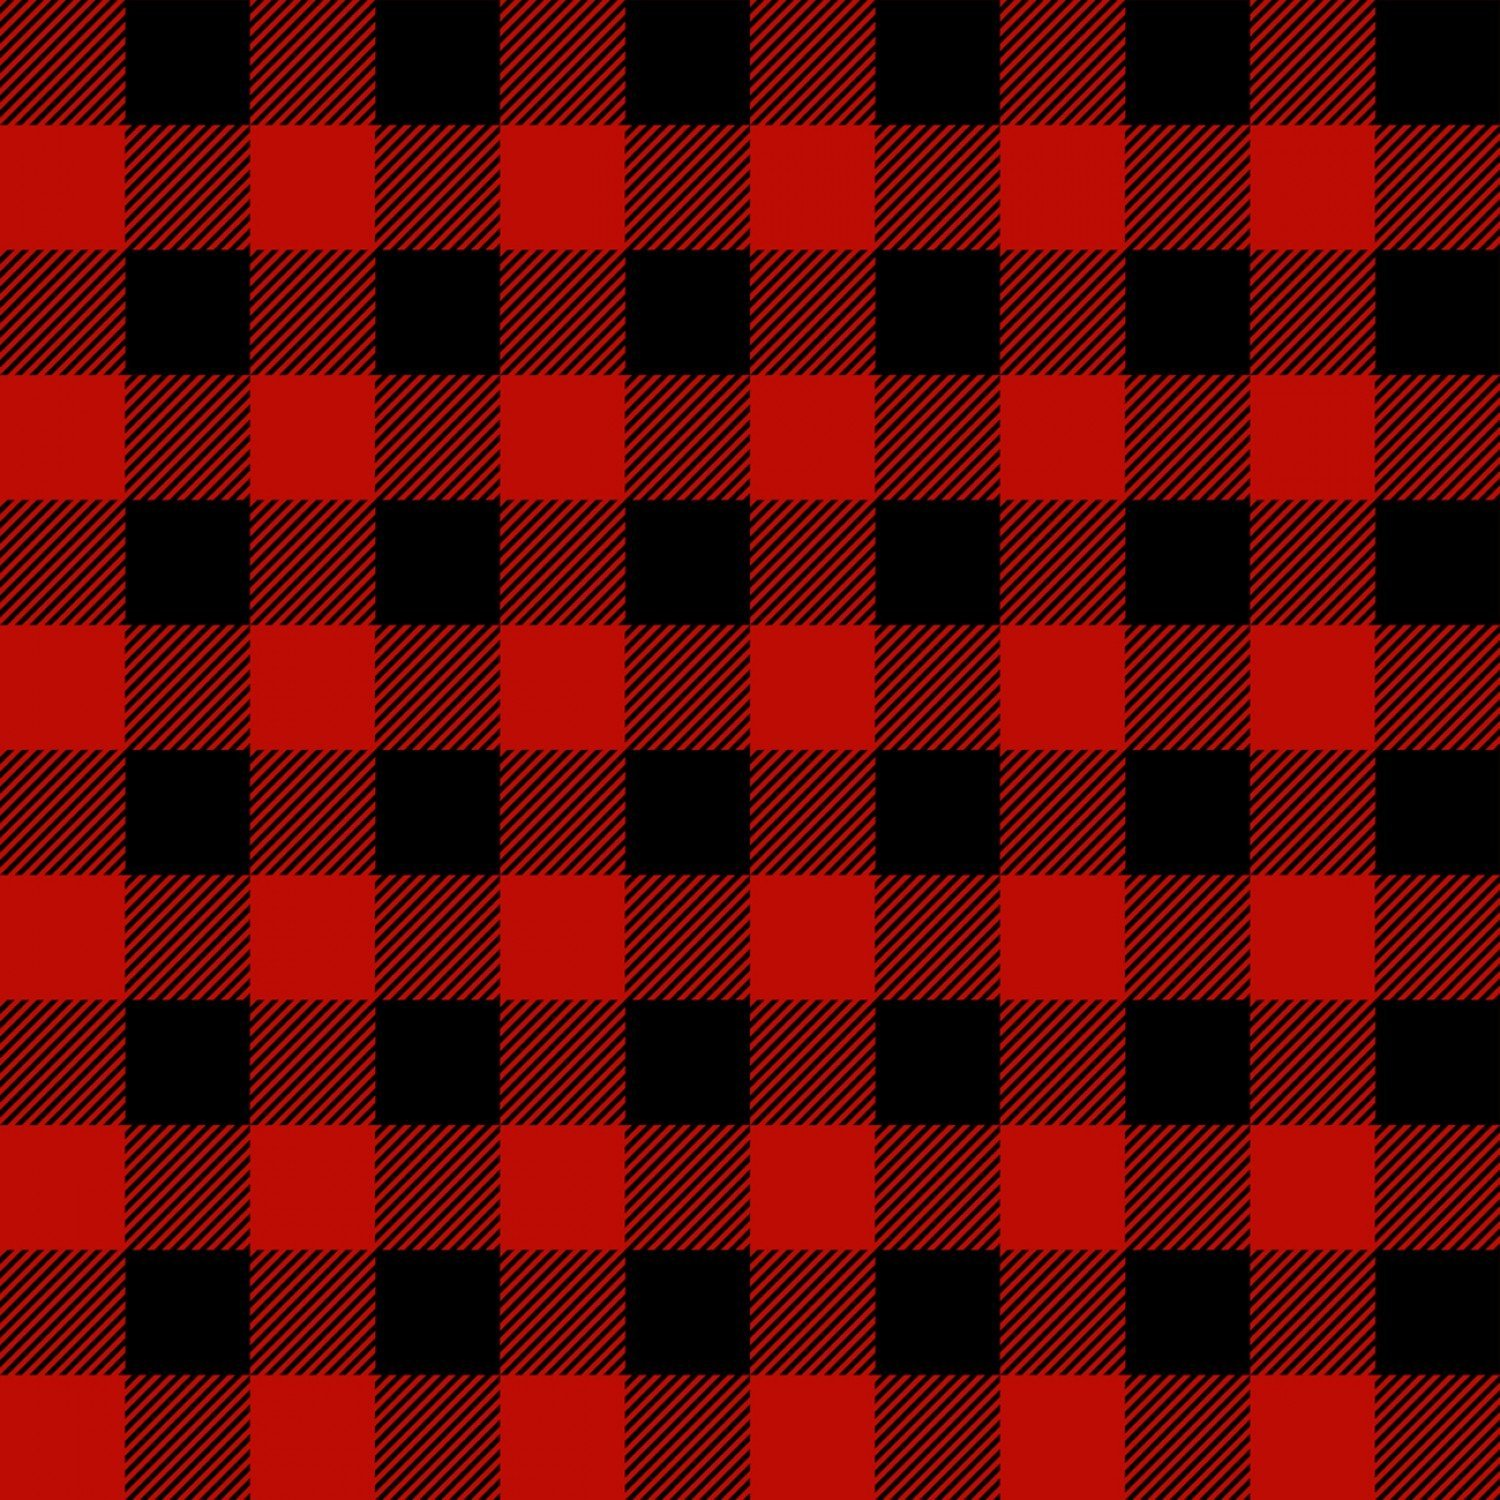 Black/Red Check 9270 89